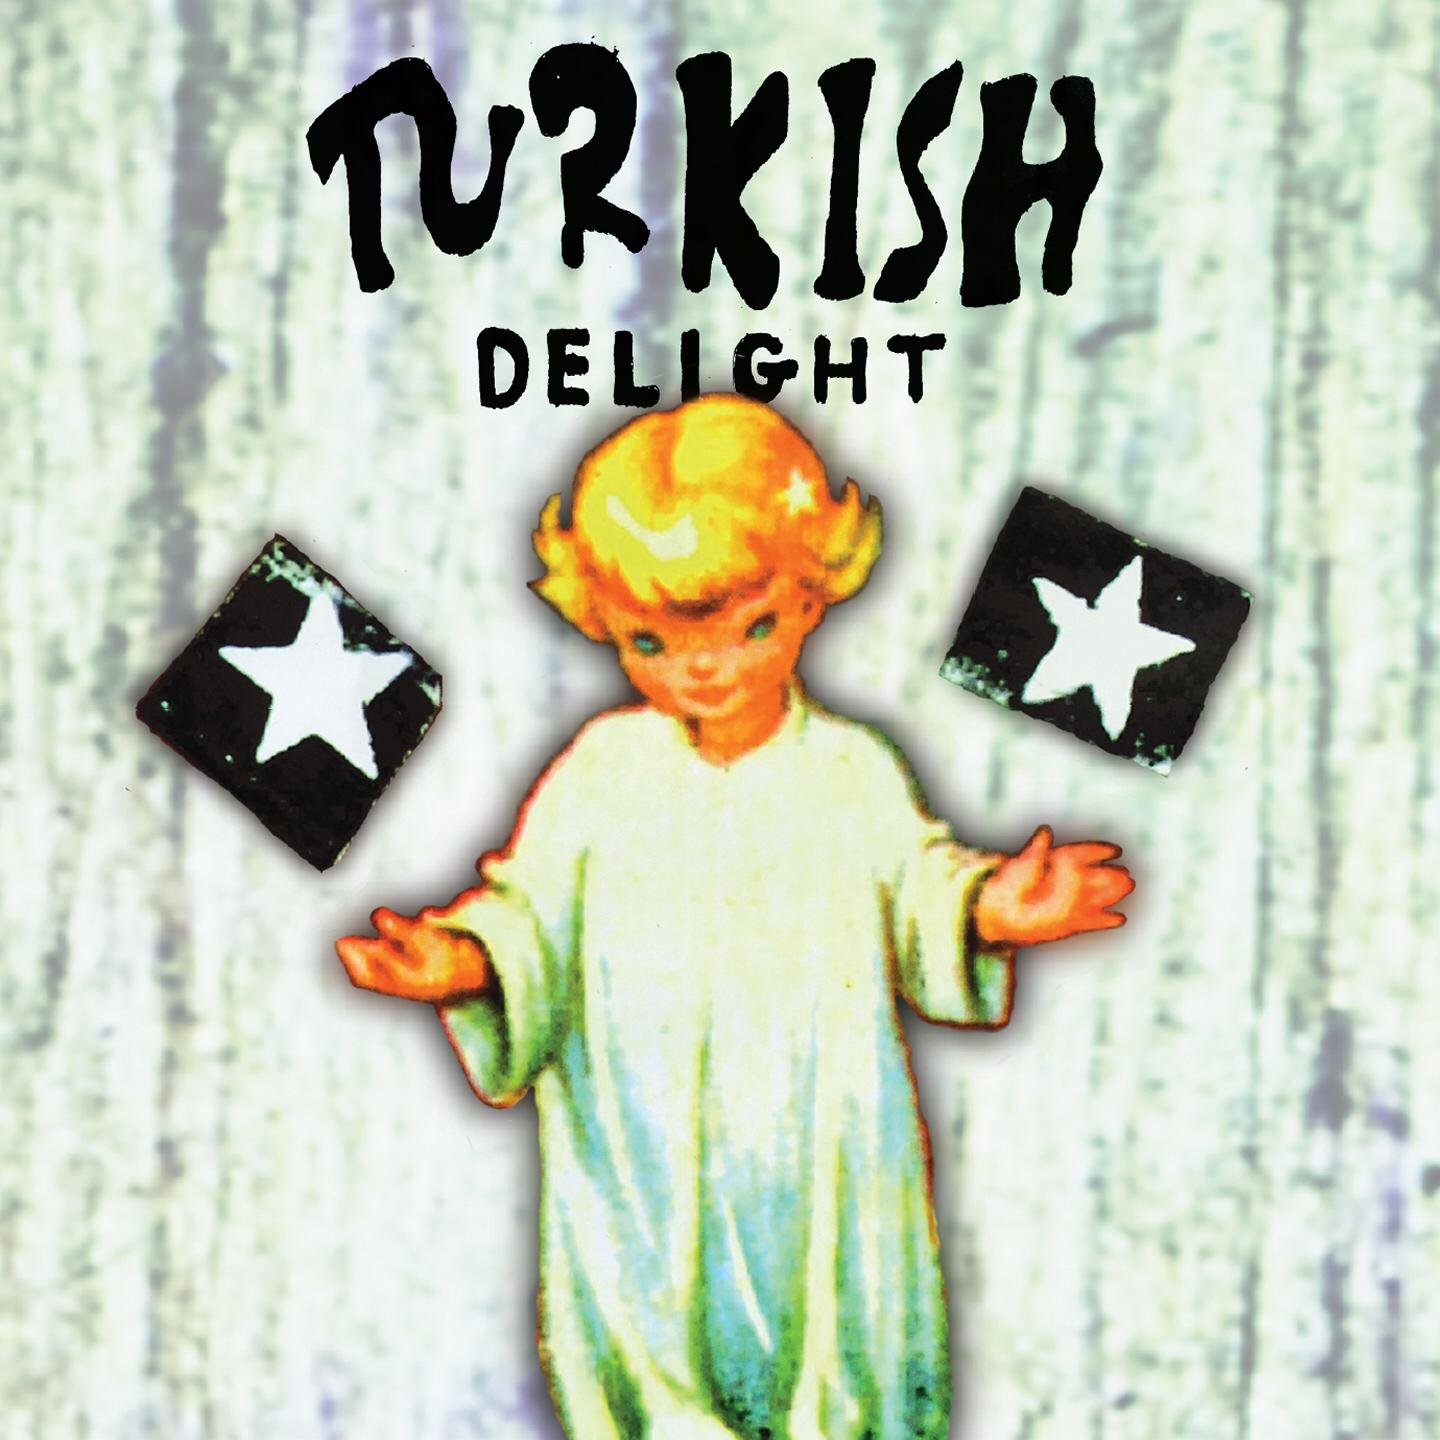 Turkish Delight reissue cover art